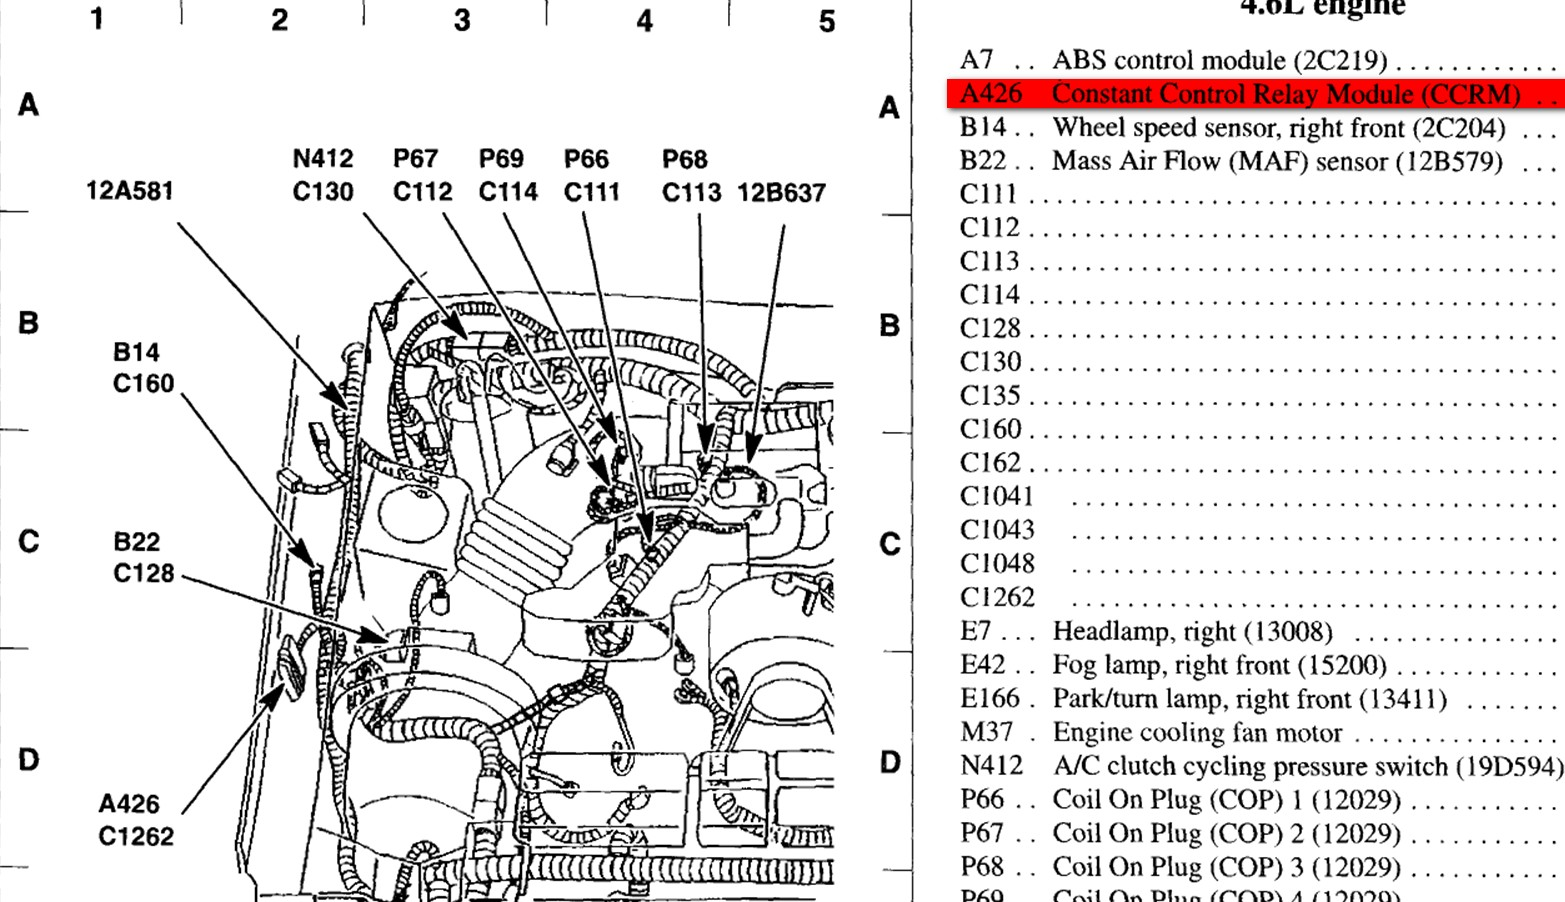 2006 Mustang Fuel Pump Diagram Automotive Wiring 2005 Ford Engine 2000 Library Rh 71 Skriptoase De Gt